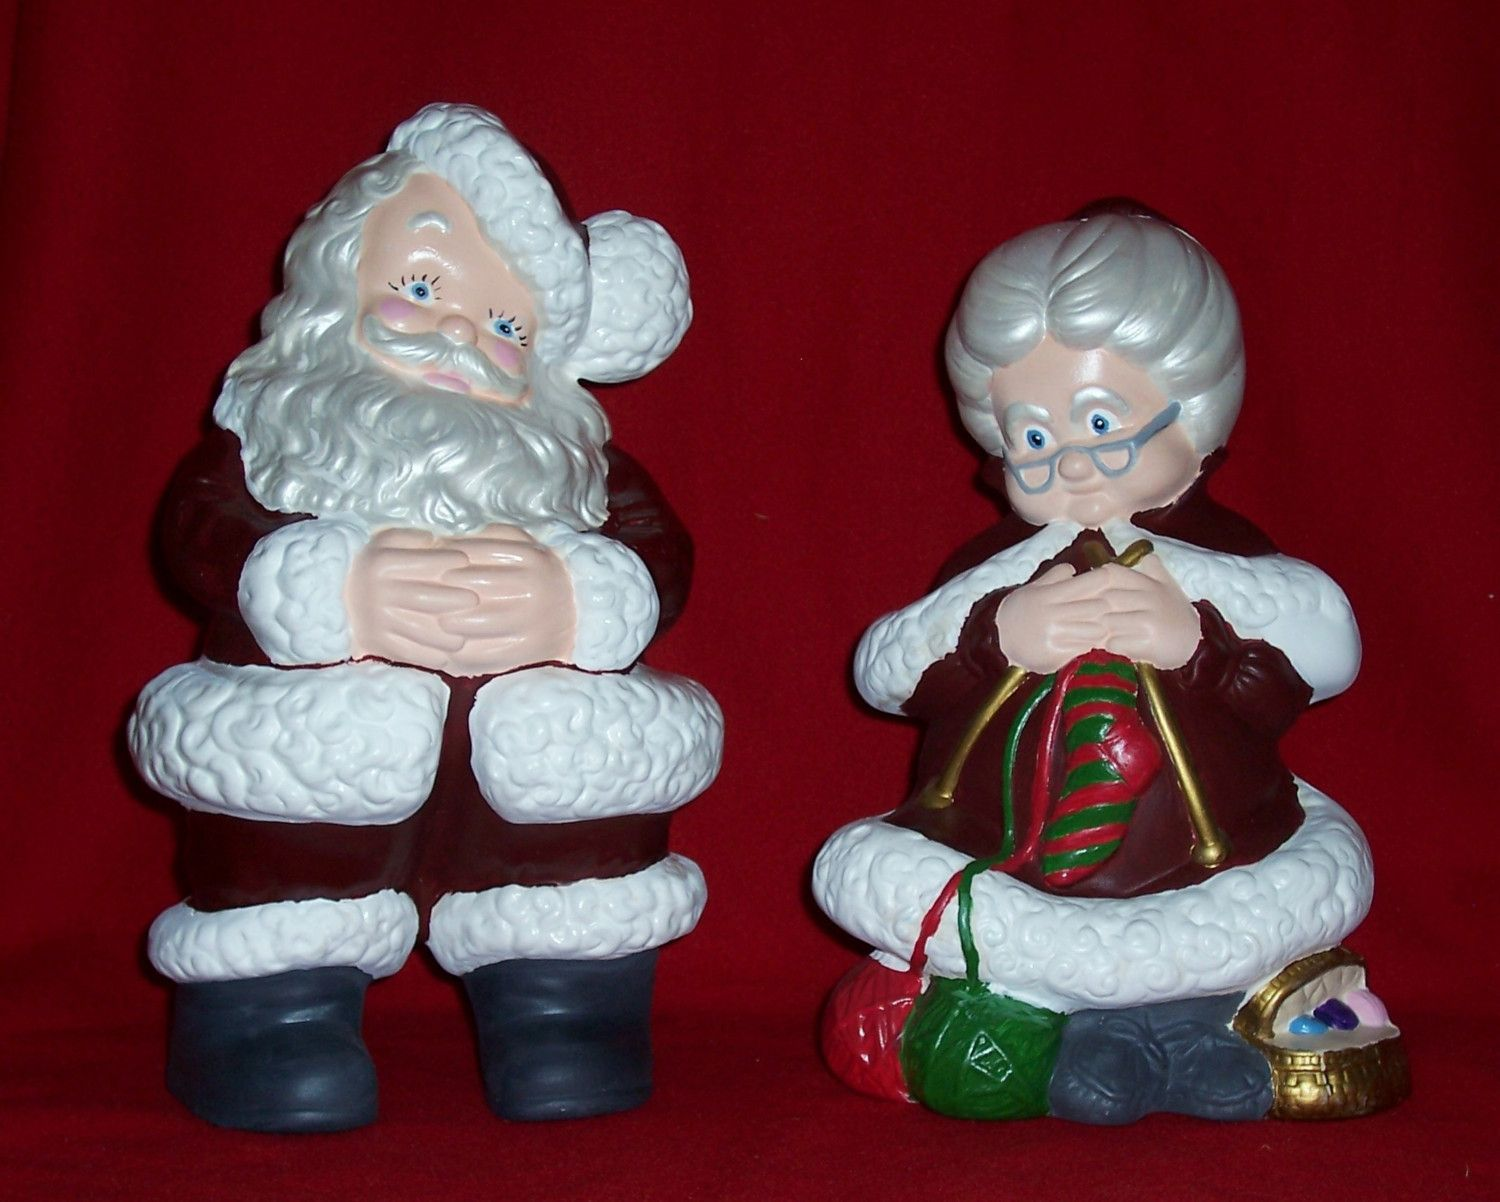 Mr And Mrs Santa Claus Ceramic Bisque I Made A Few Sets Of These For Gifts Back In The Day Still Have Mine Christmas Art Painted Gourds Hand Painted Ceramics